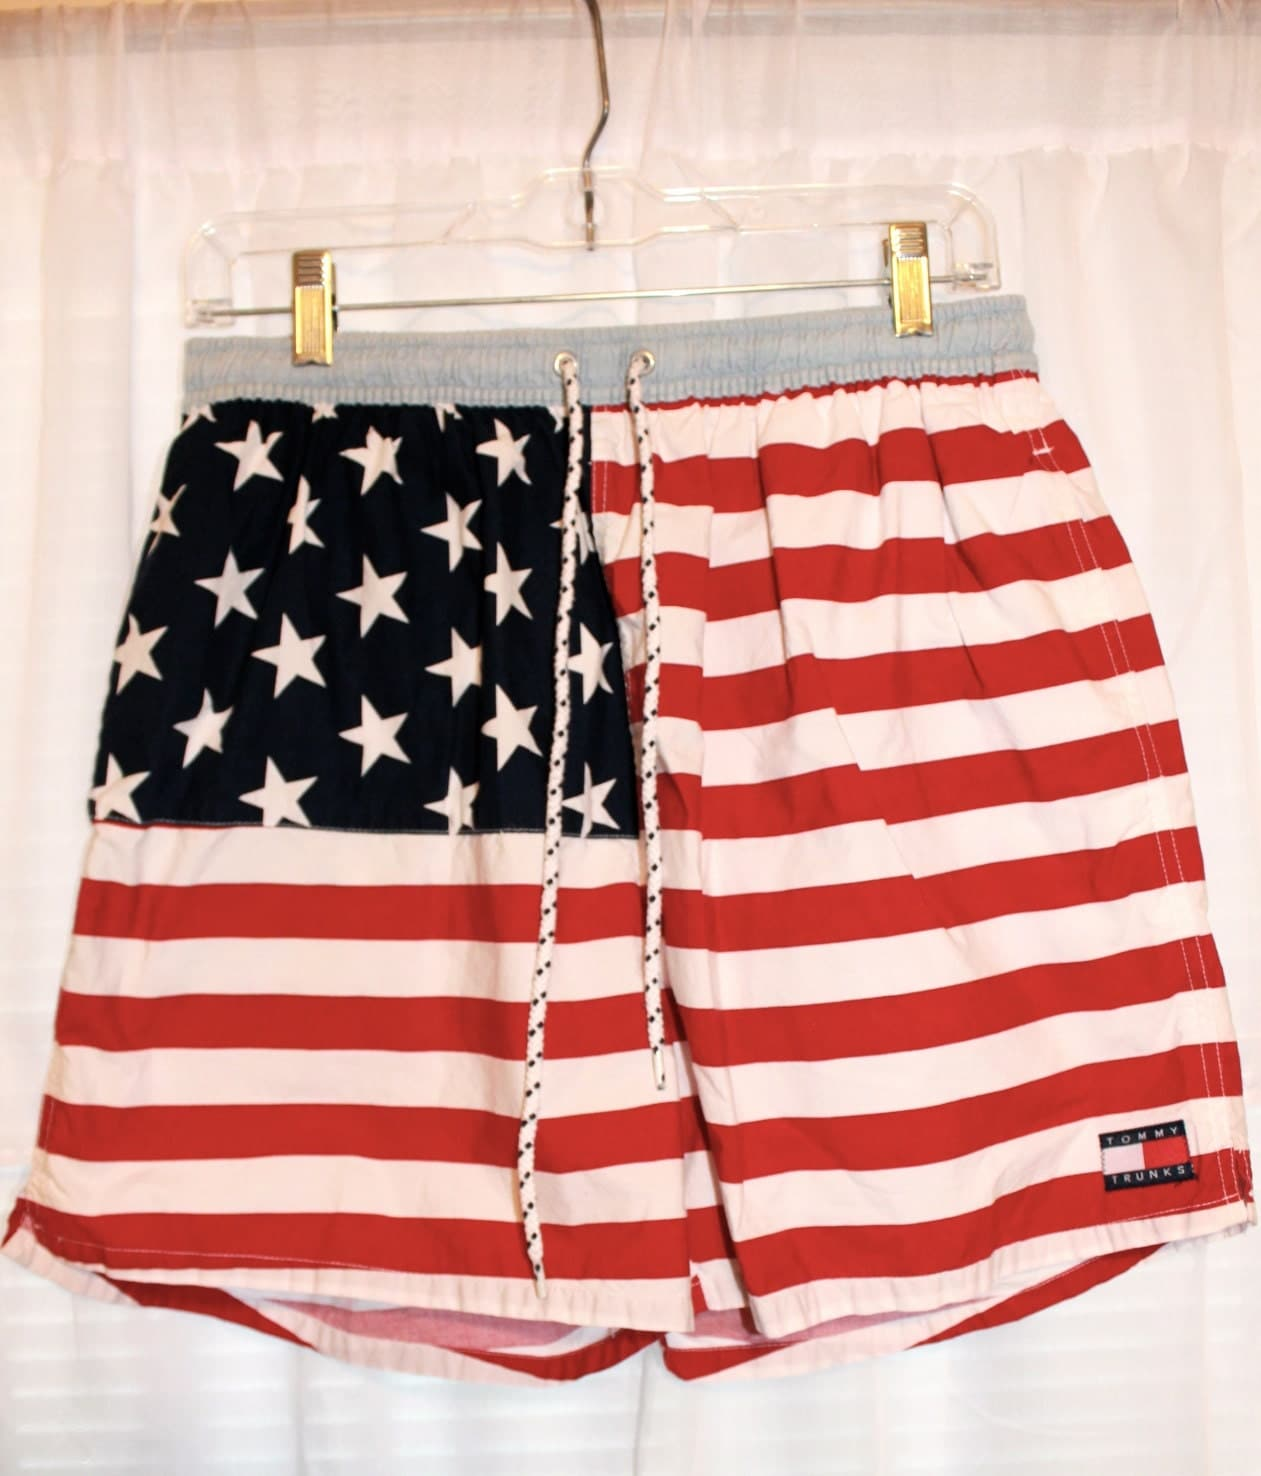 Show your American pride with these Men's Flag Swim Trunks. They feature an American flag pattern. These elastic waist swim trunks have a drawstring closure in the front and two side pockets for your convenience. They are available in a variety of sizes/5(12).